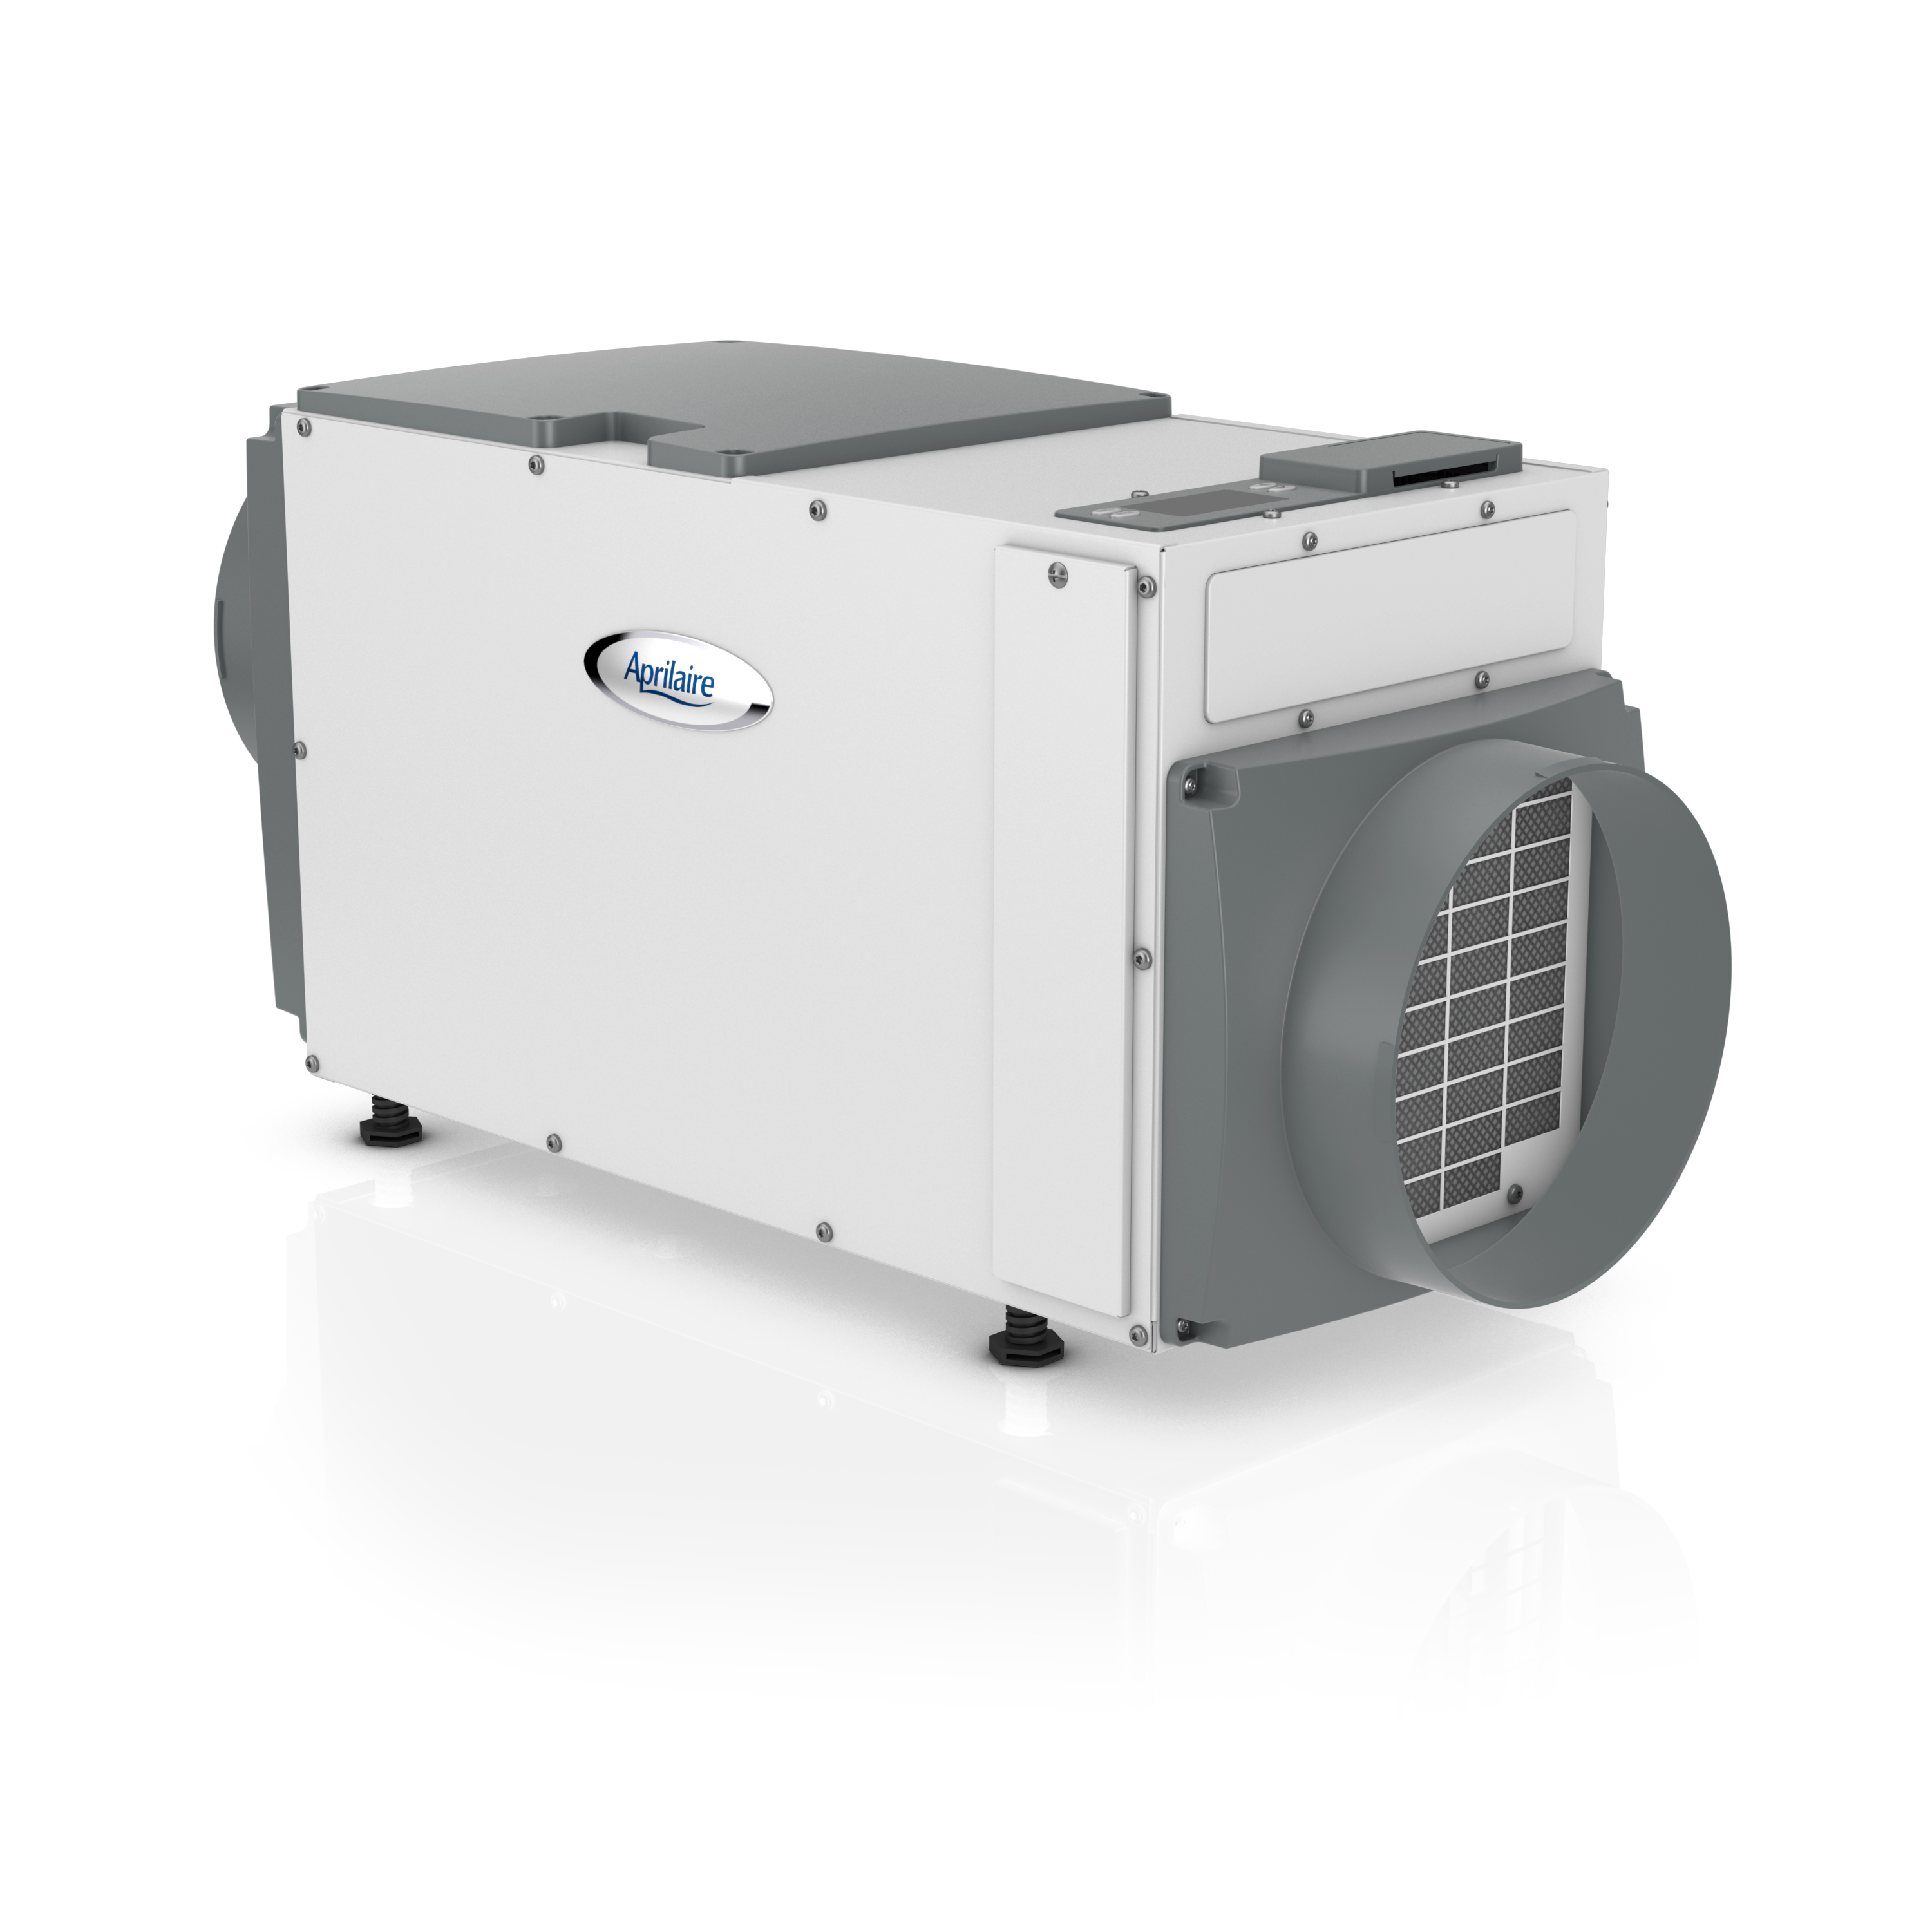 Aprilaire Model 1850 and 1850w Dehumidifier